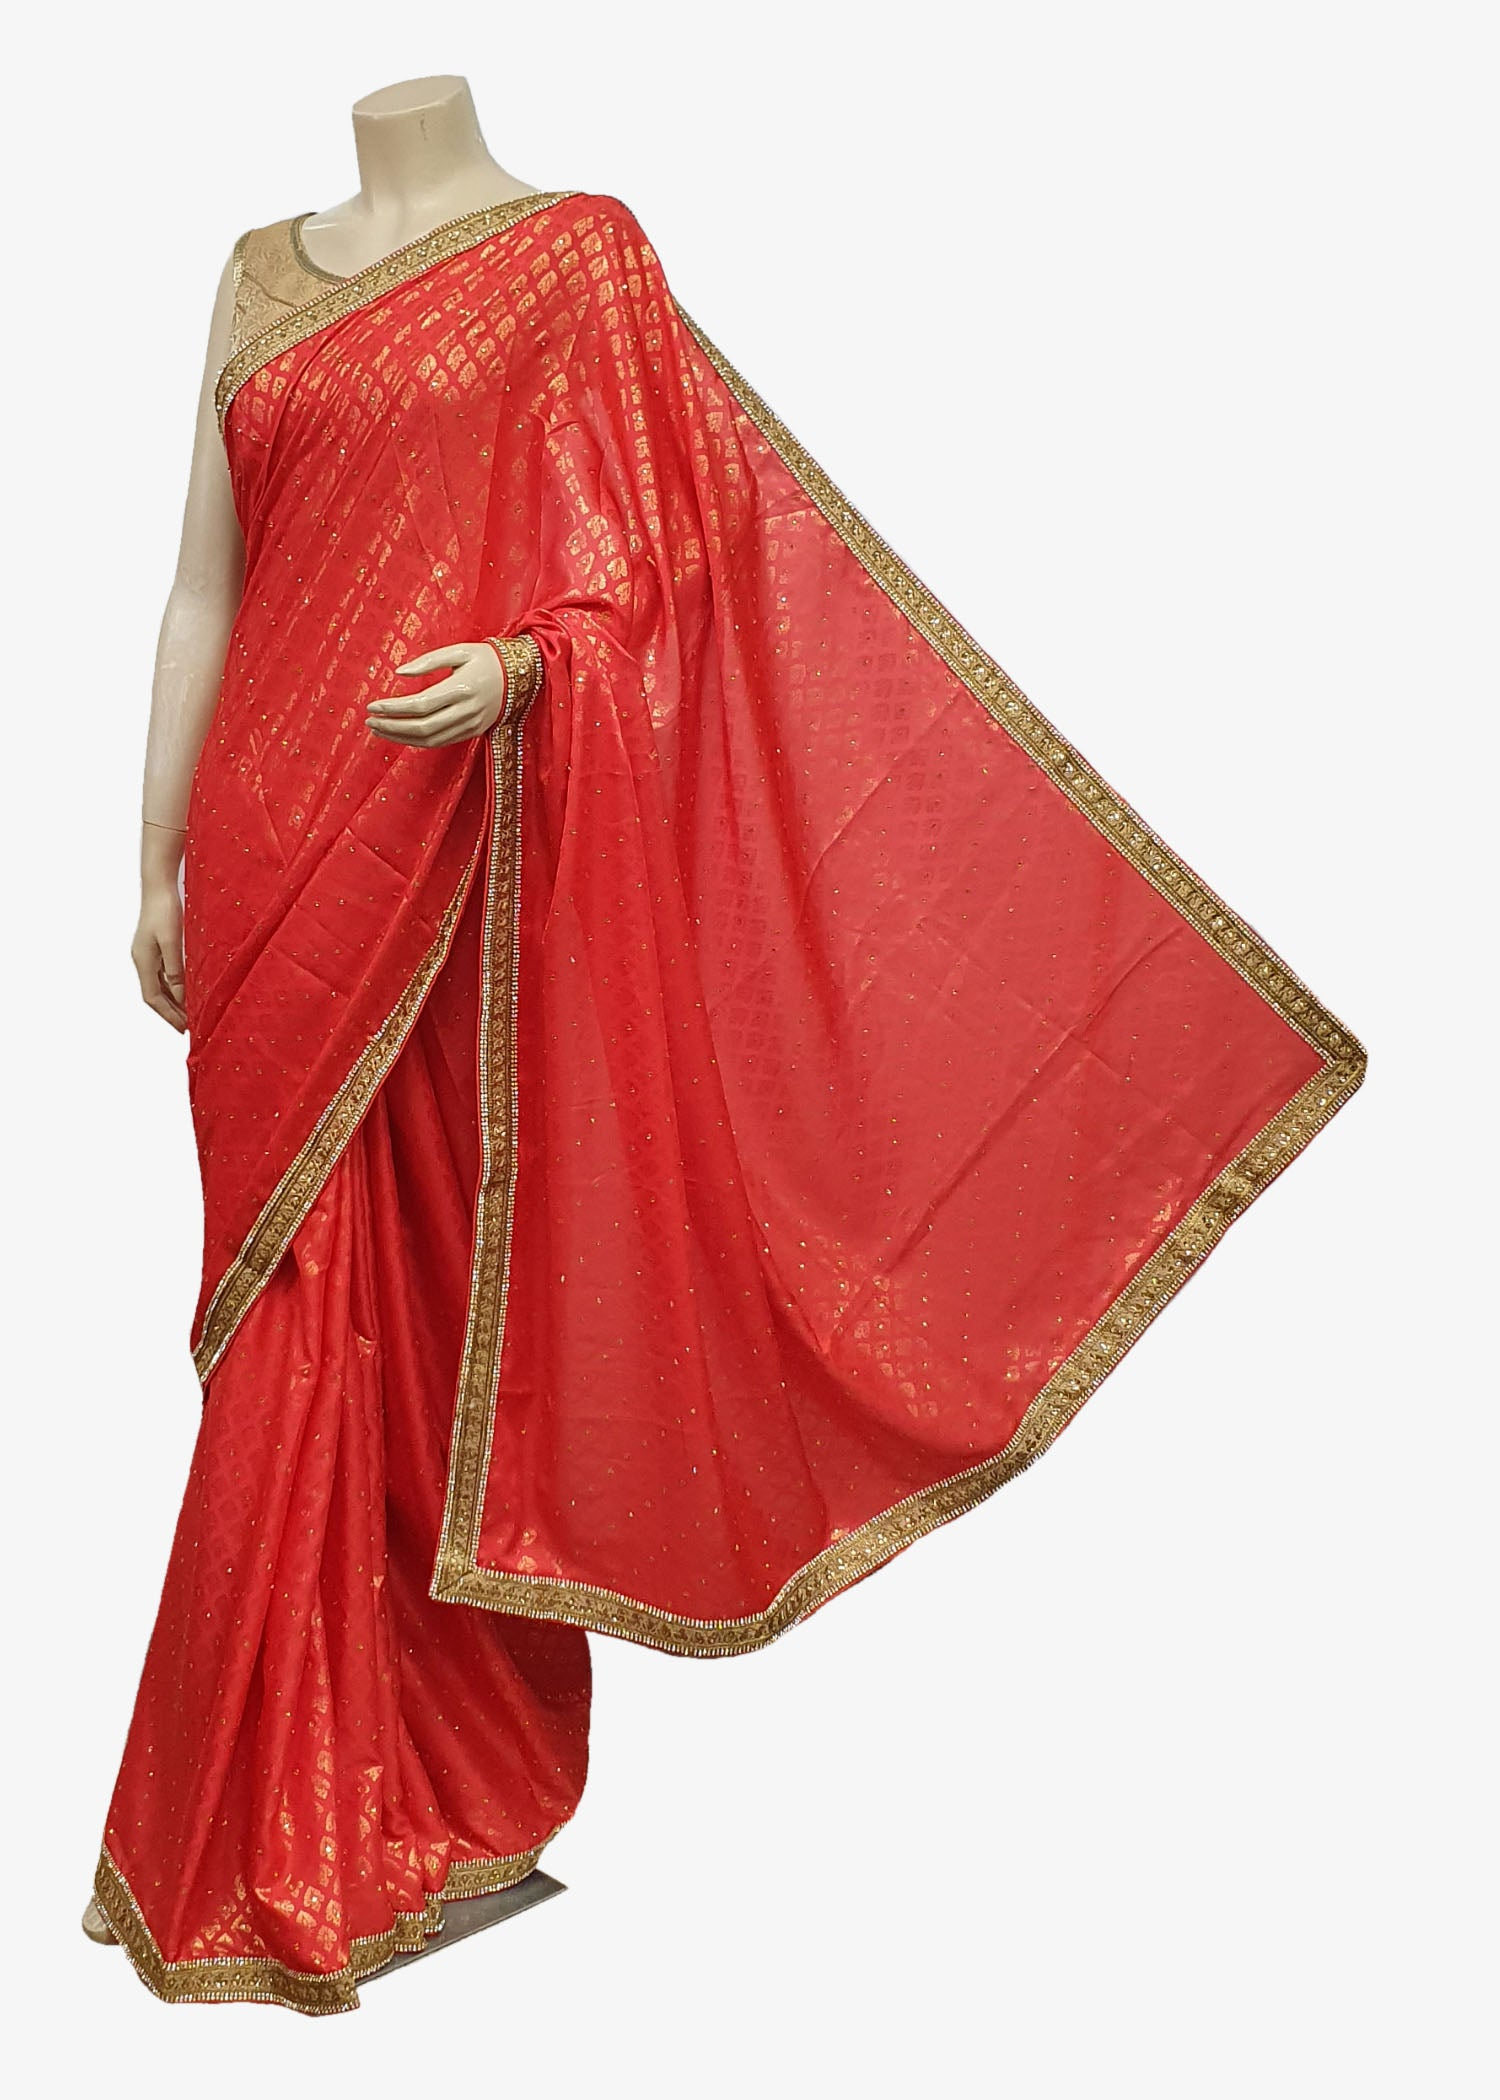 Red Banarsi Brocade Saree With Antique Embroidered Border